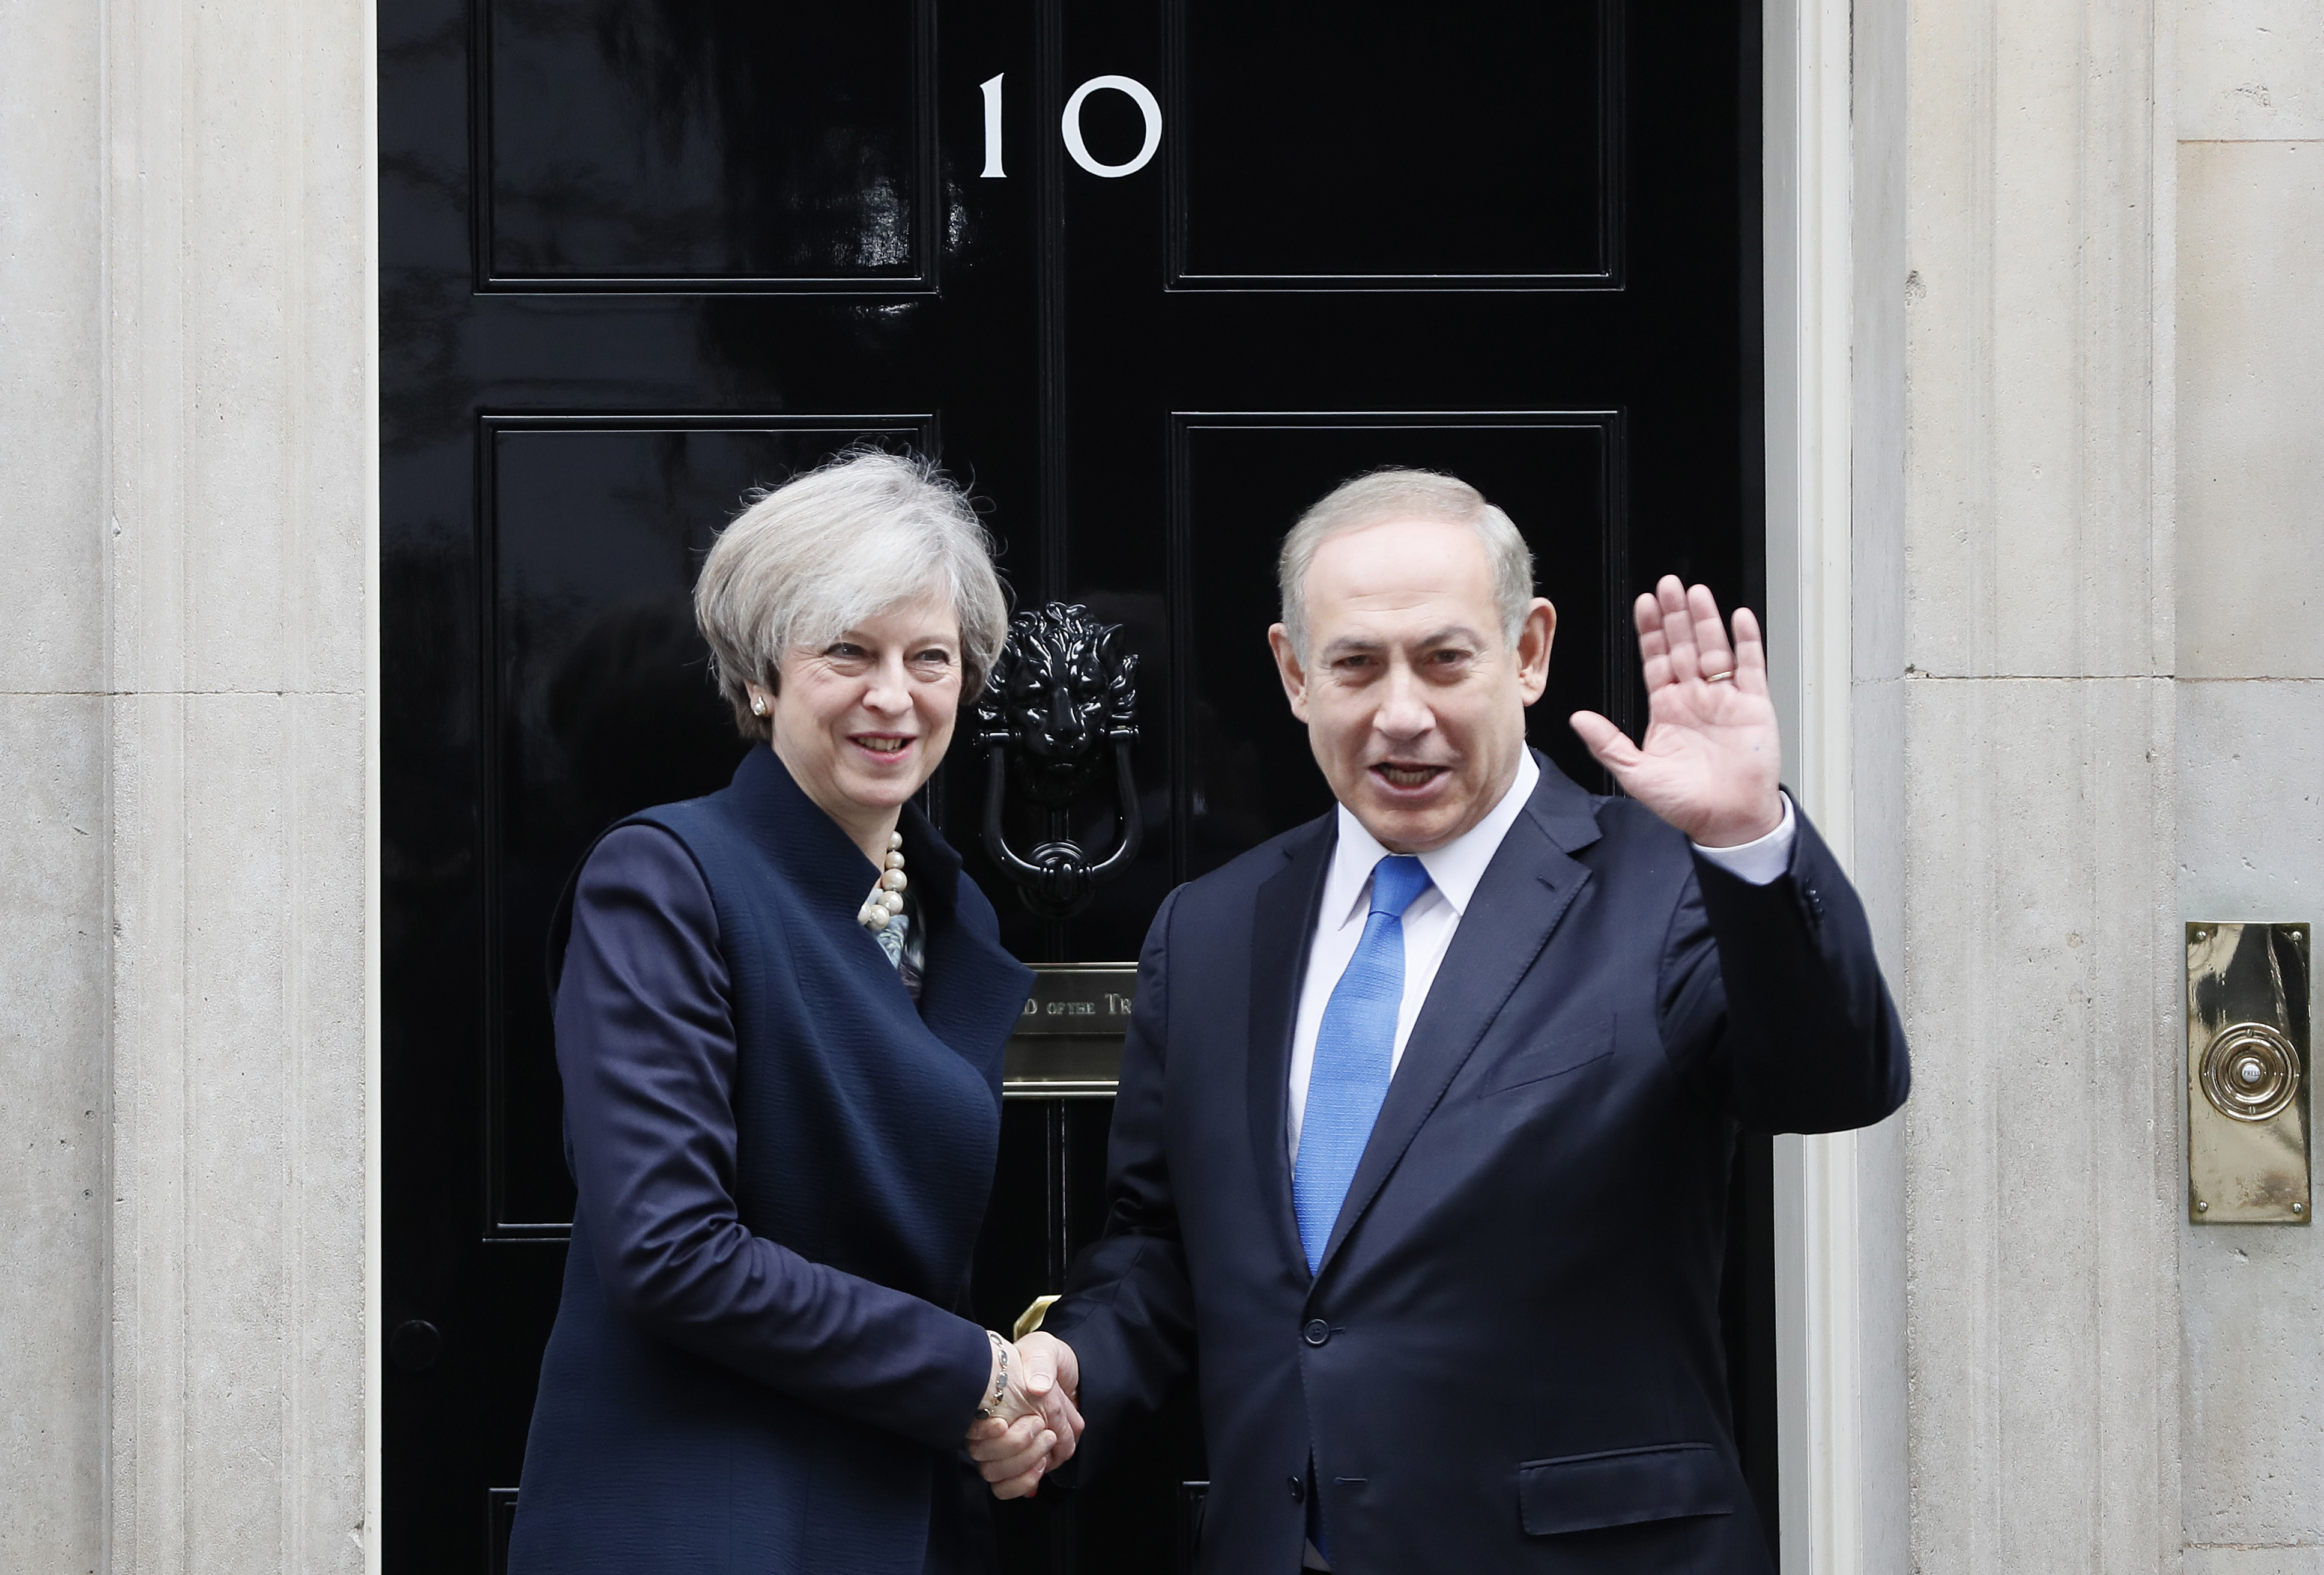 Britain's Prime Minister Theresa May greets Prime Minister Benjamin Netanyahu of Israel at Downing Street in London on Feb. 6, 2017. (AP Photo/Kirsty Wigglesworth)